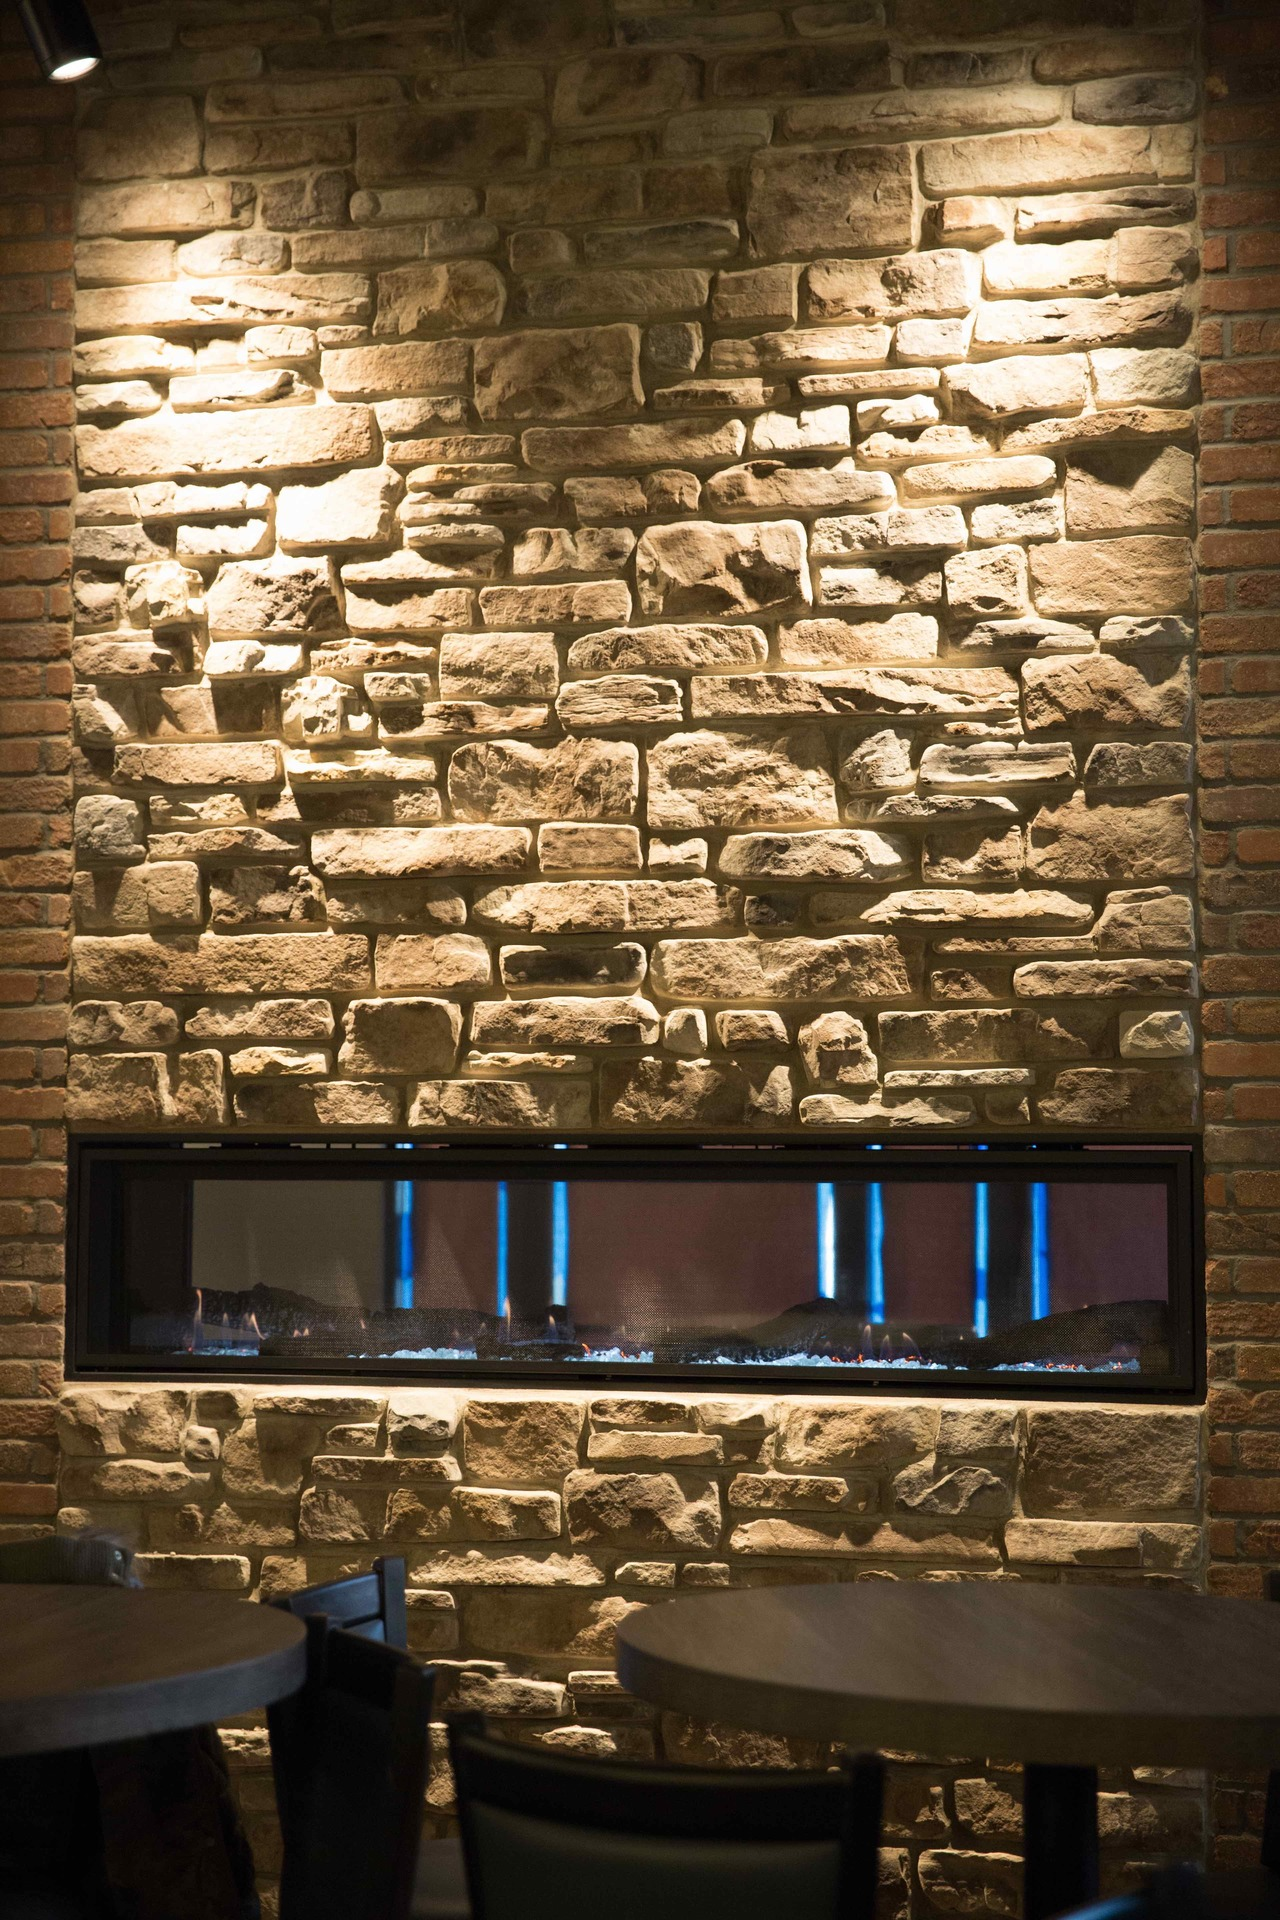 Speedymason Stone Lath provides a solid and unique barrier system to install your stone tile. The panels fit all stone sizes.